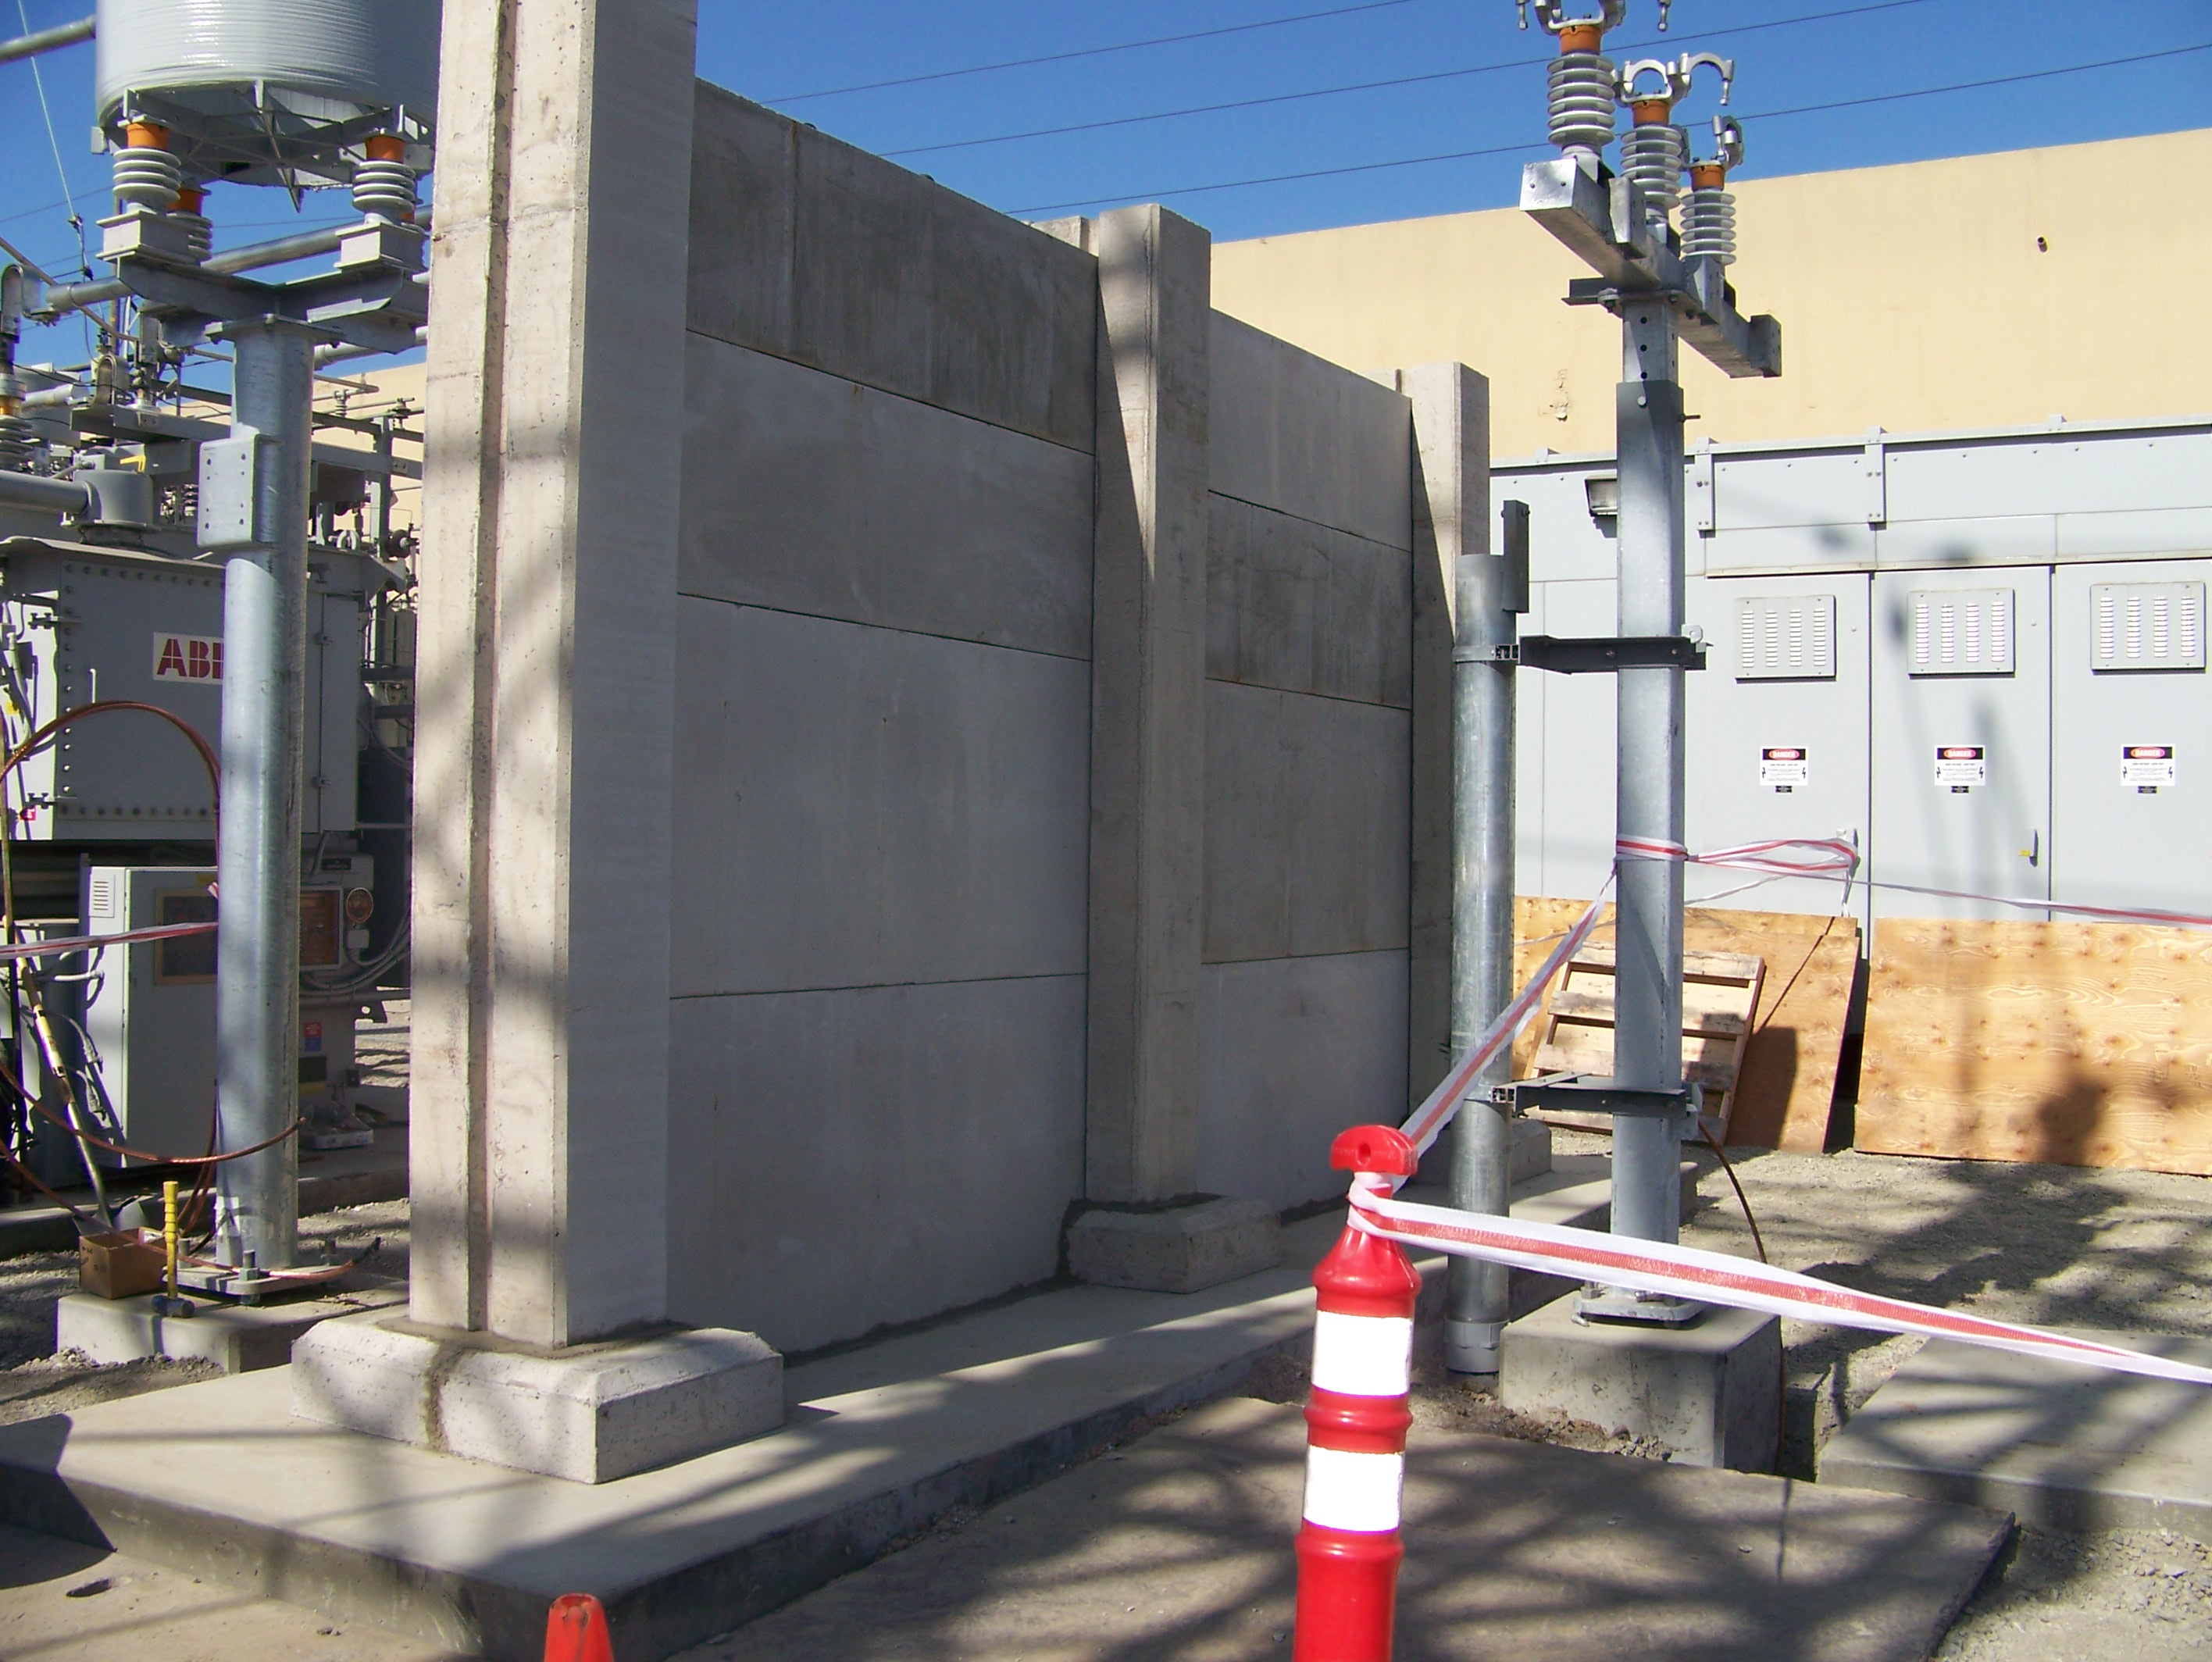 File:Firewall Electrical Substation jpg - Wikimedia Commons